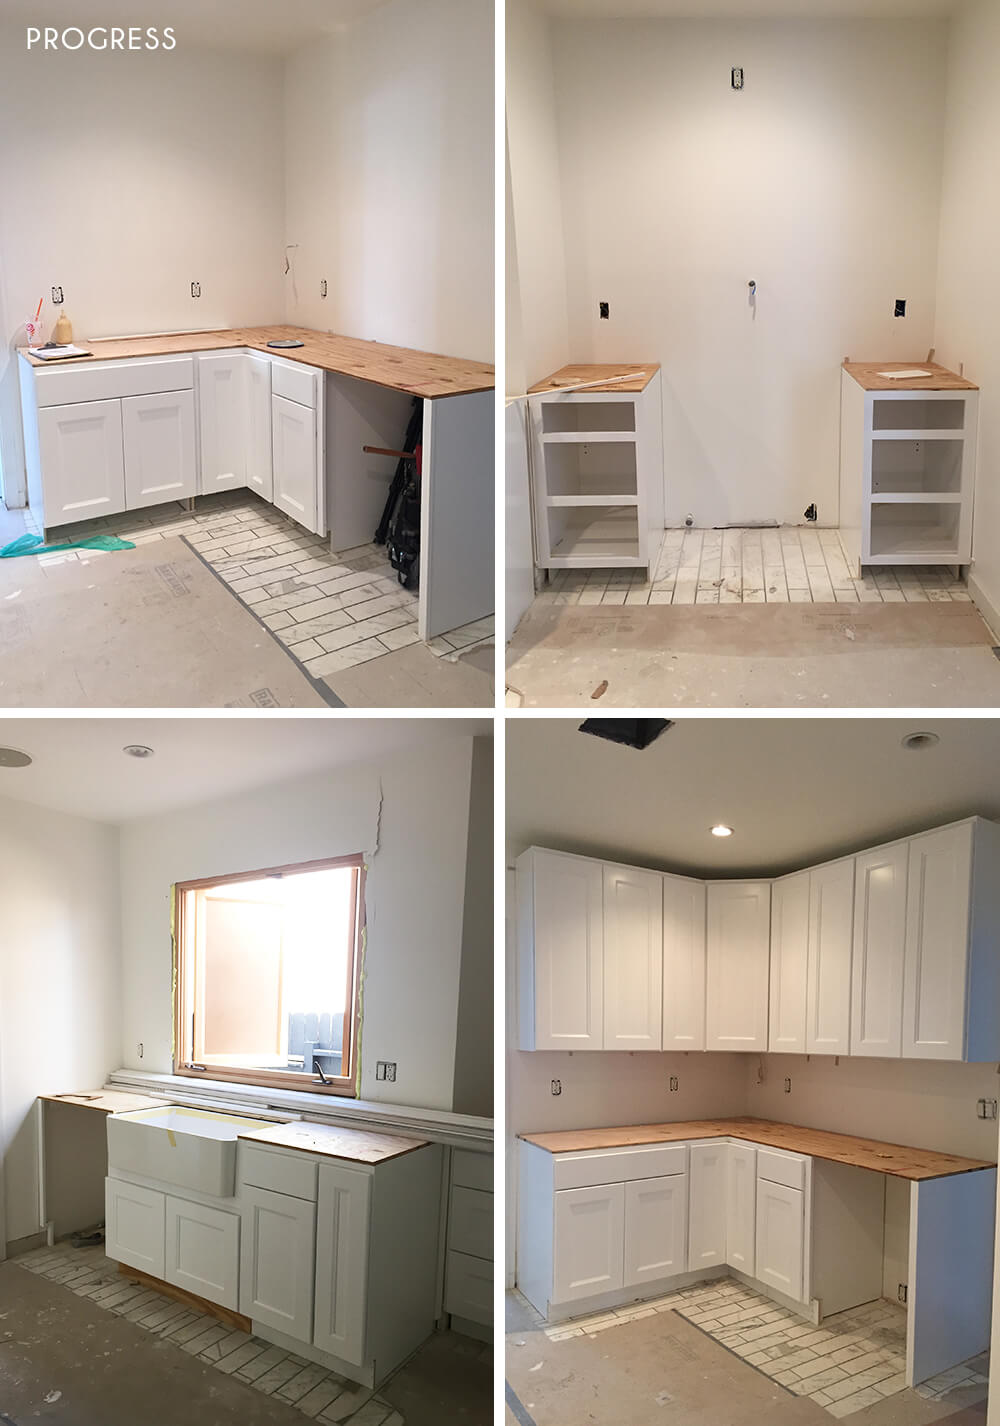 Sarah-Stabuel-Kitchen-Progress-photos-Ginny_Macdonald_Design